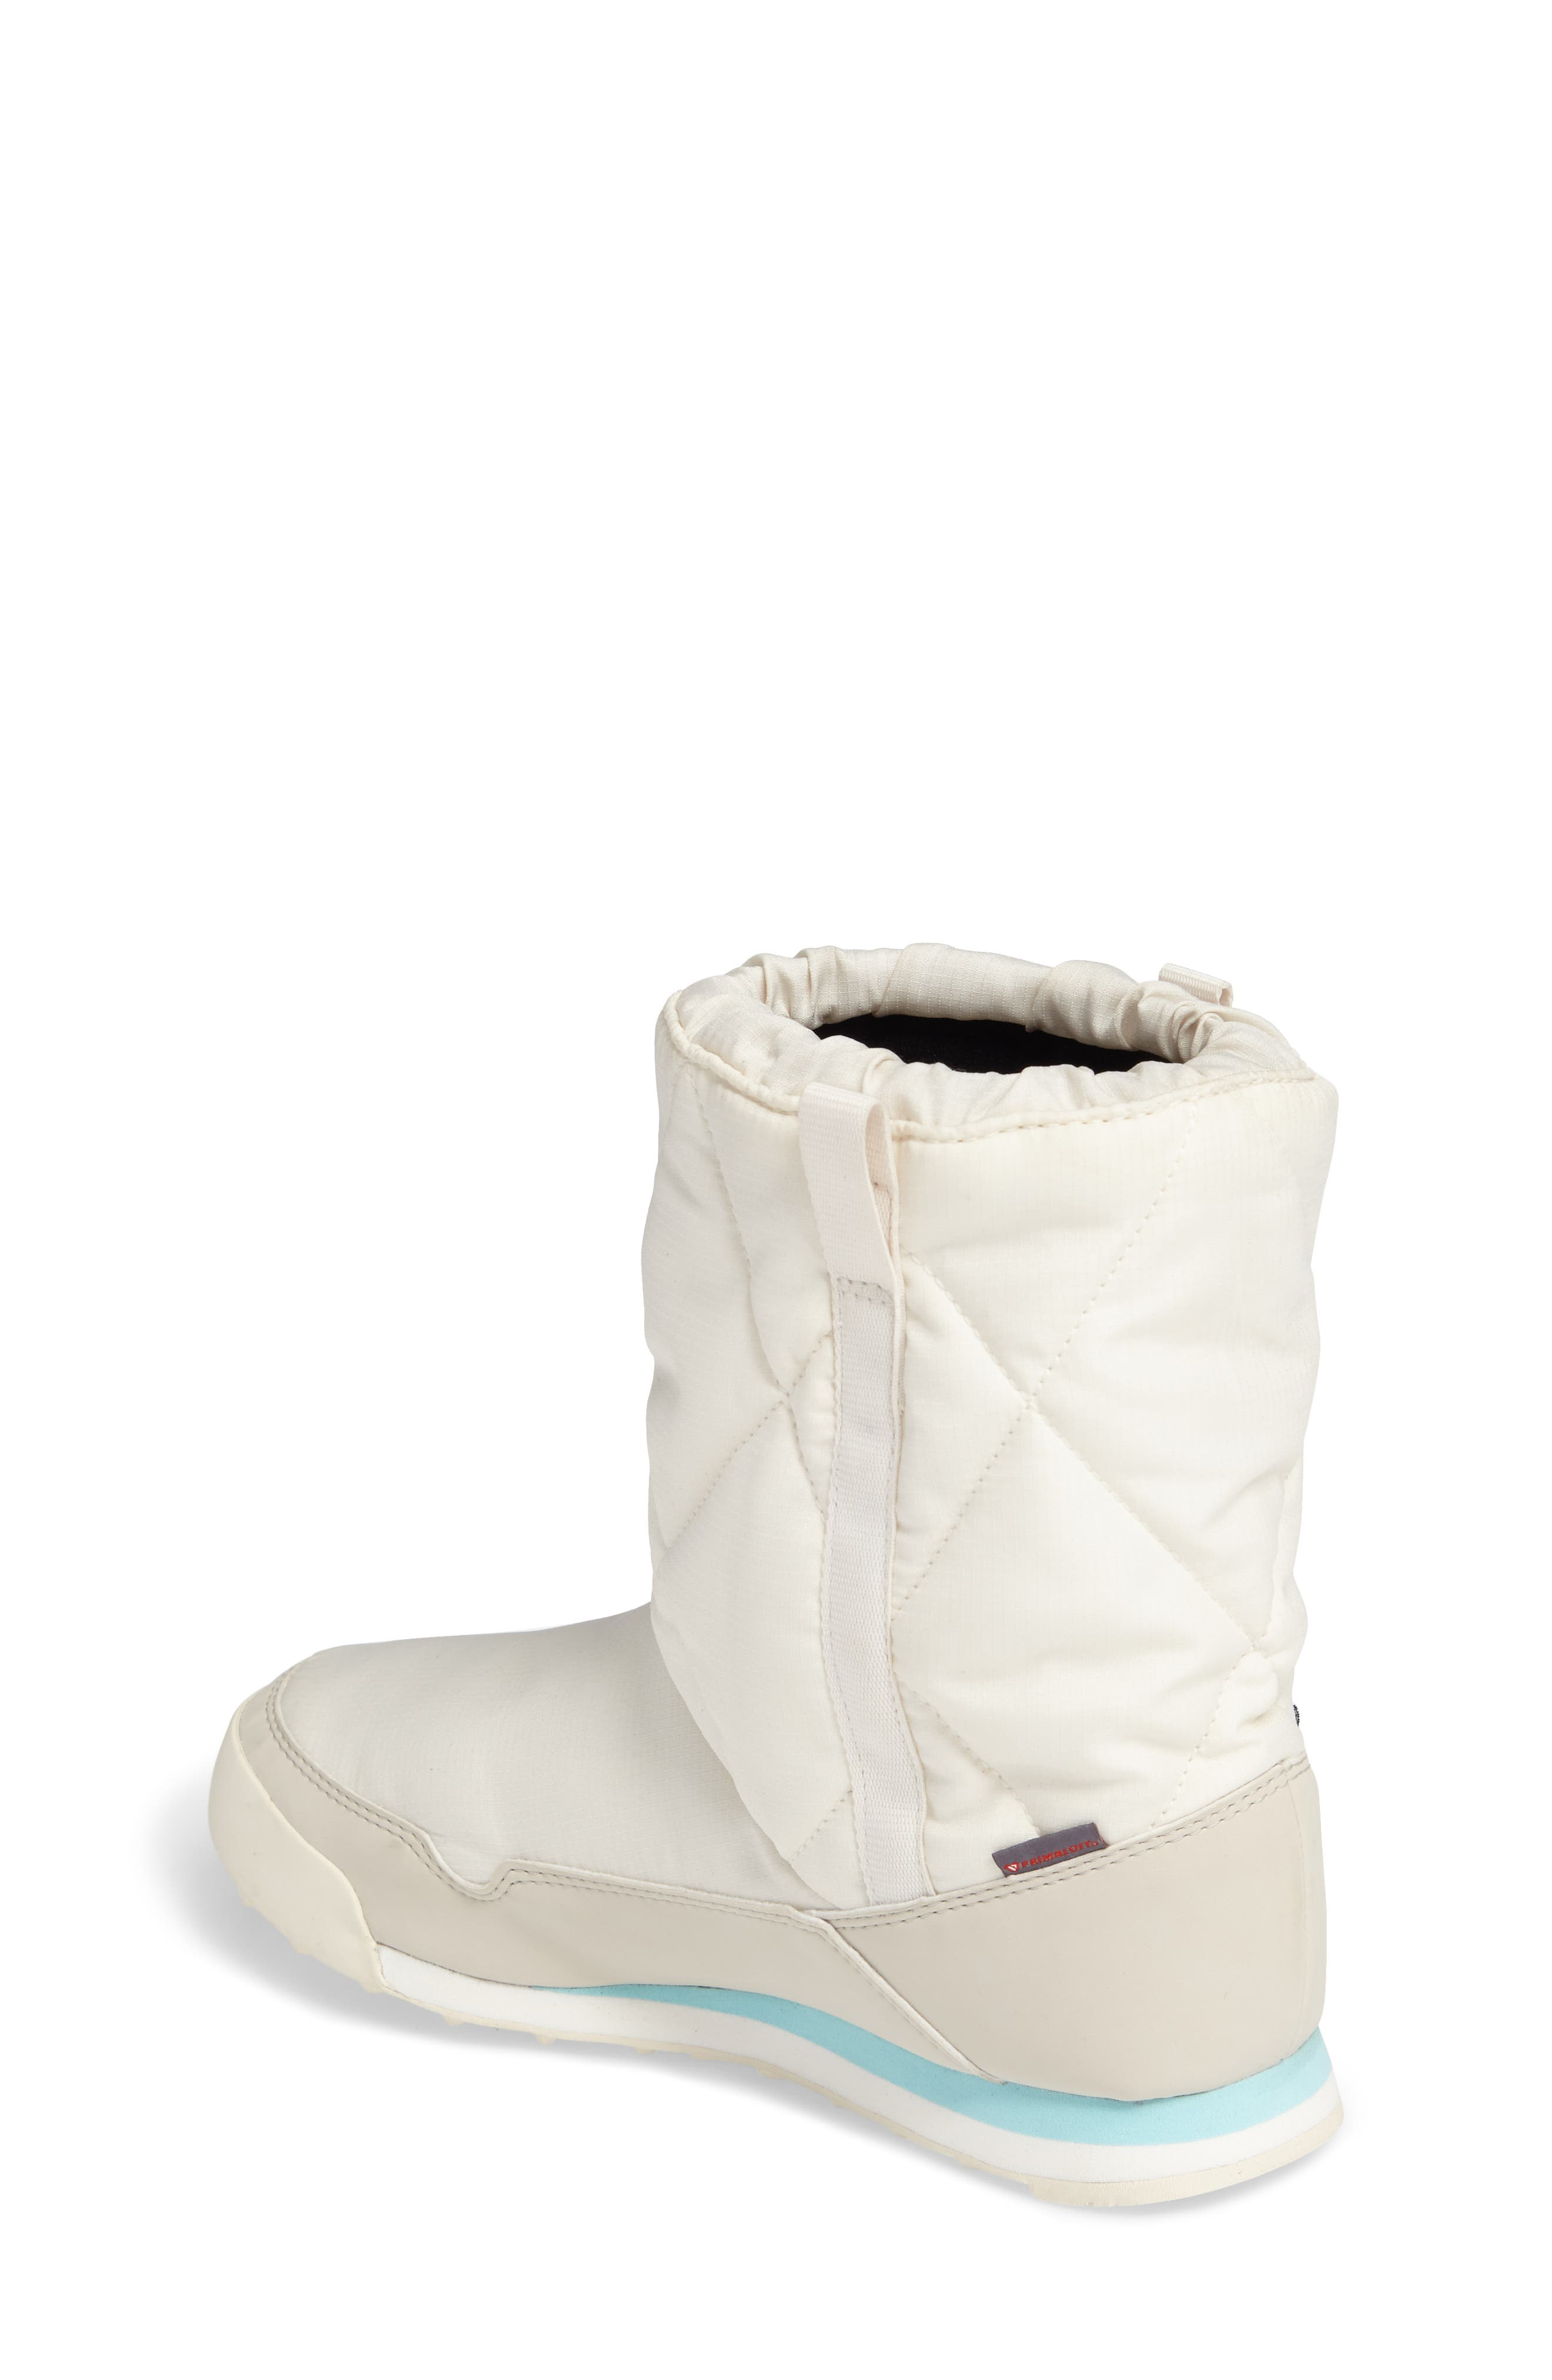 CW Snowpitch Insulated Waterproof Boot,                             Alternate thumbnail 2, color,                             Chalk White/ Clear Brown/ Aqua